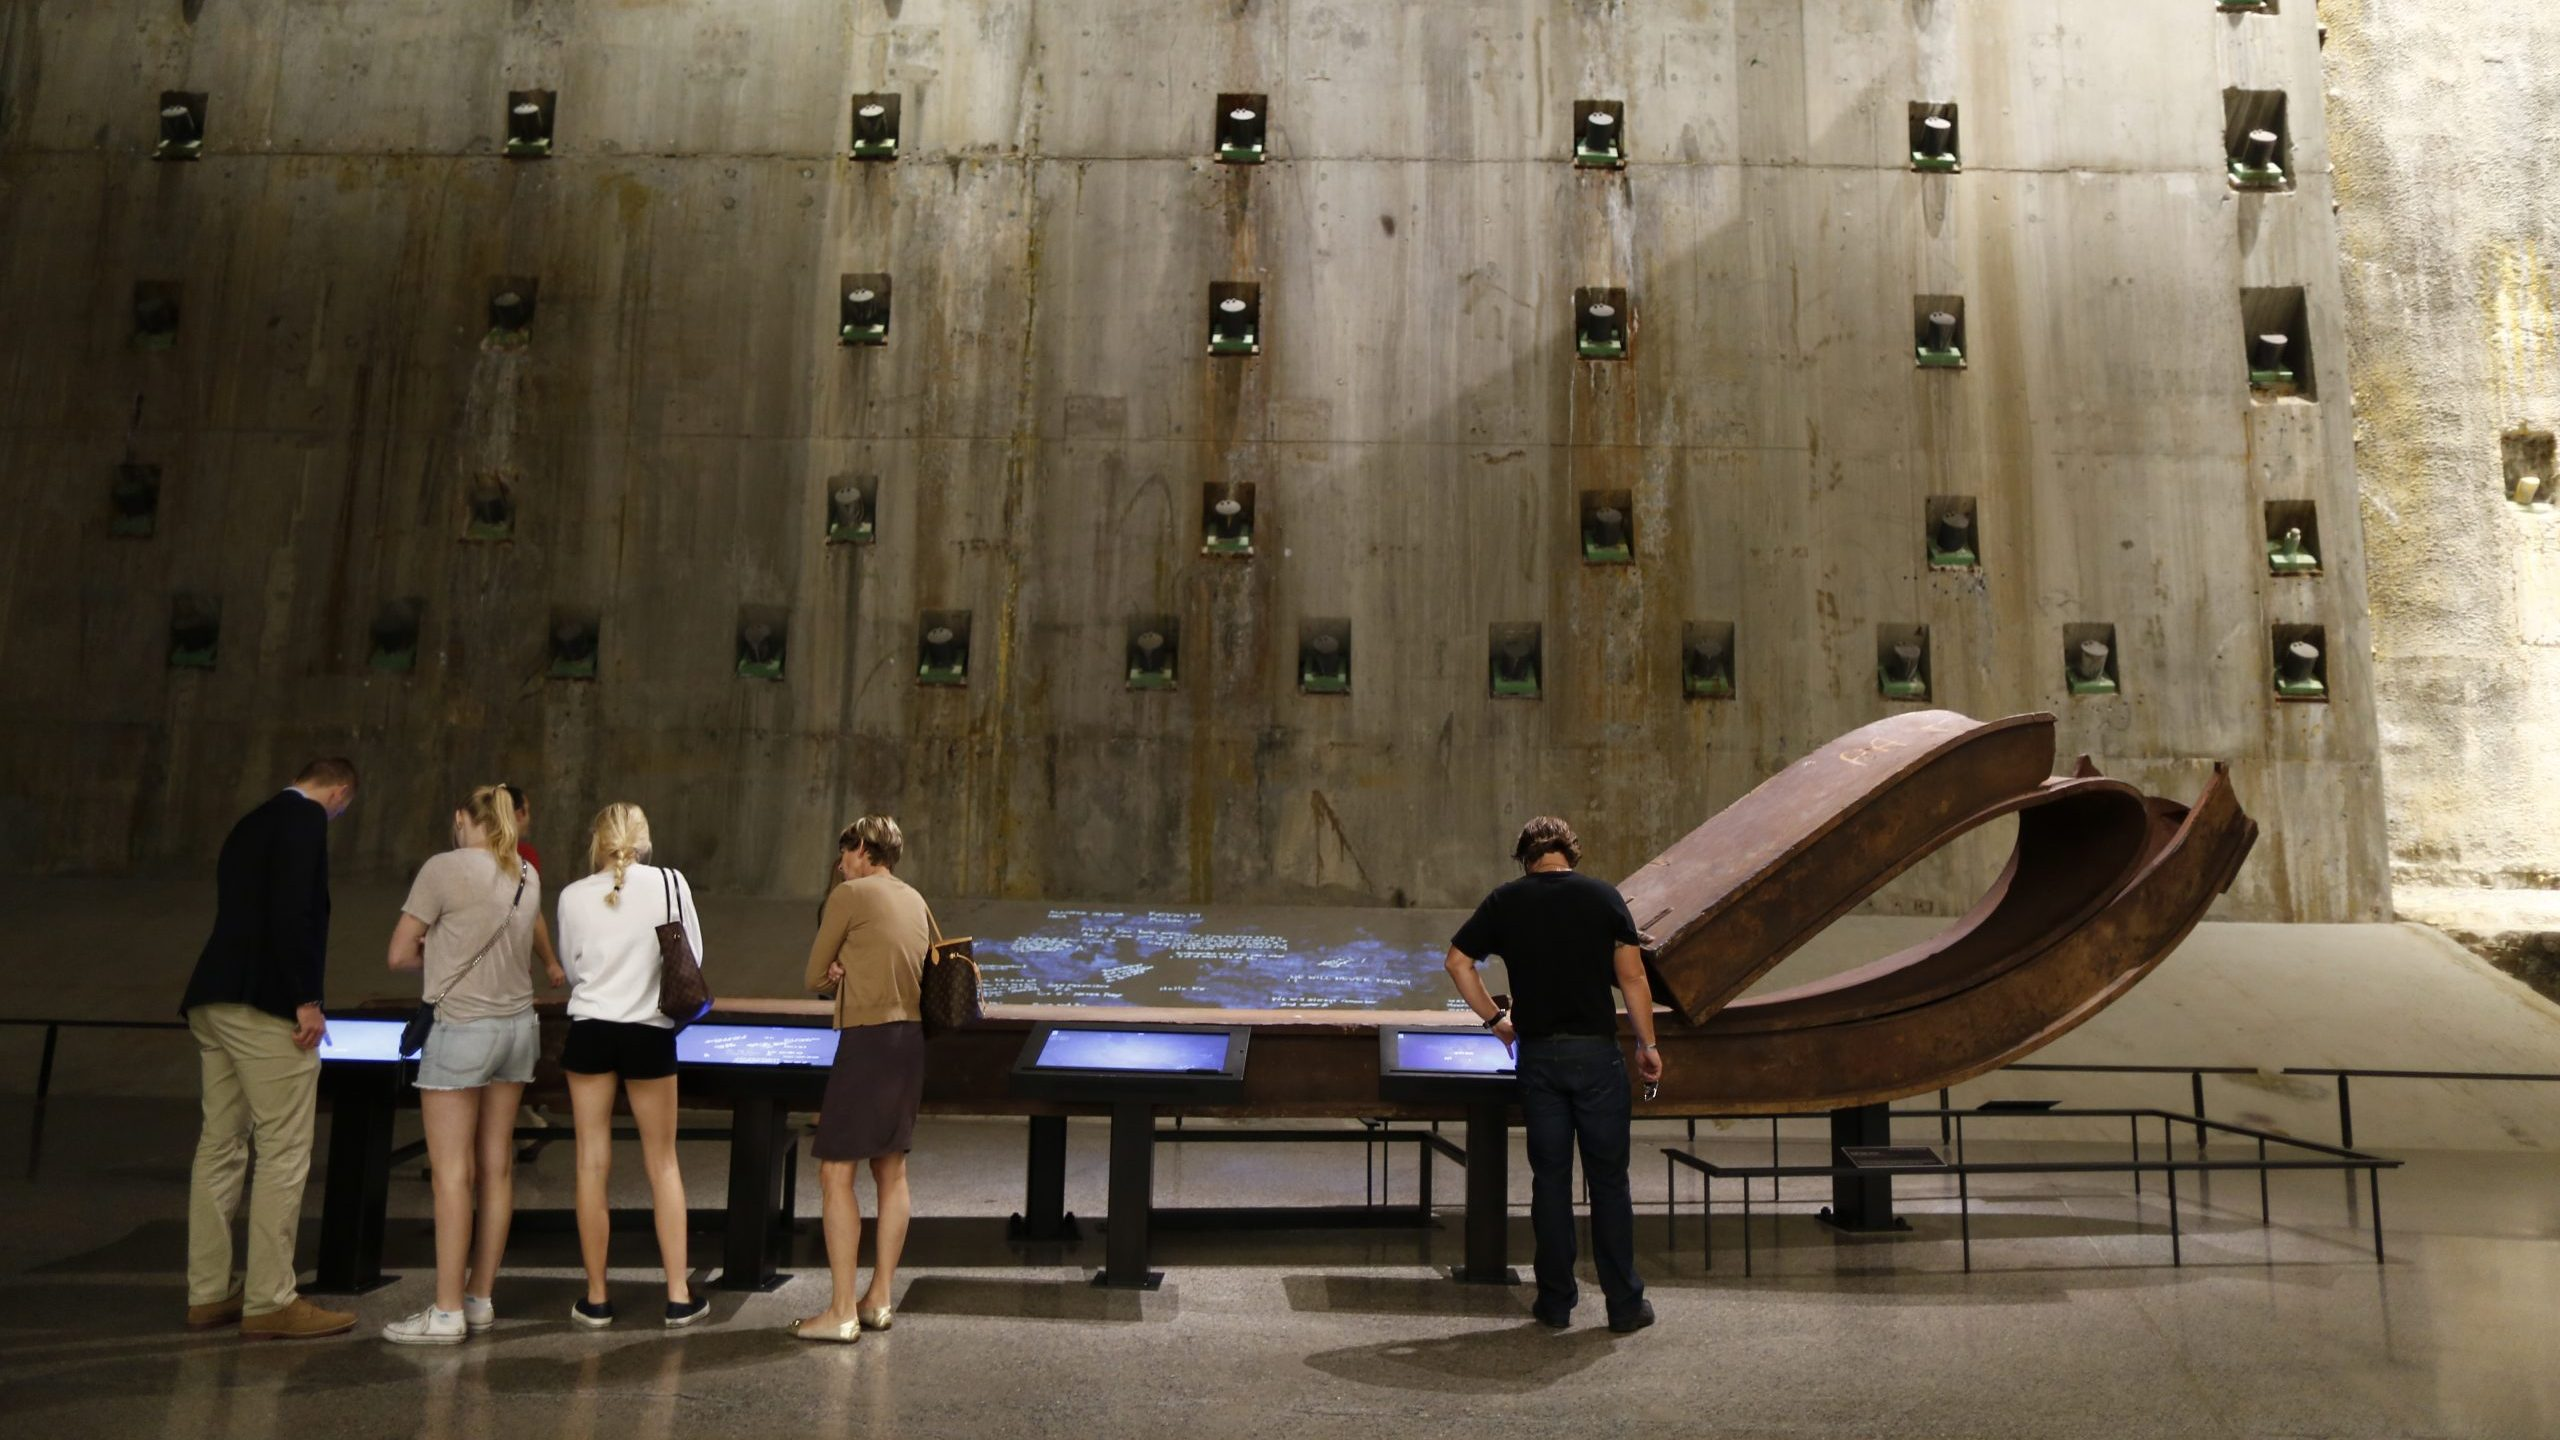 The Foundation Hall at the 9/11 Memorial & Museum in New York